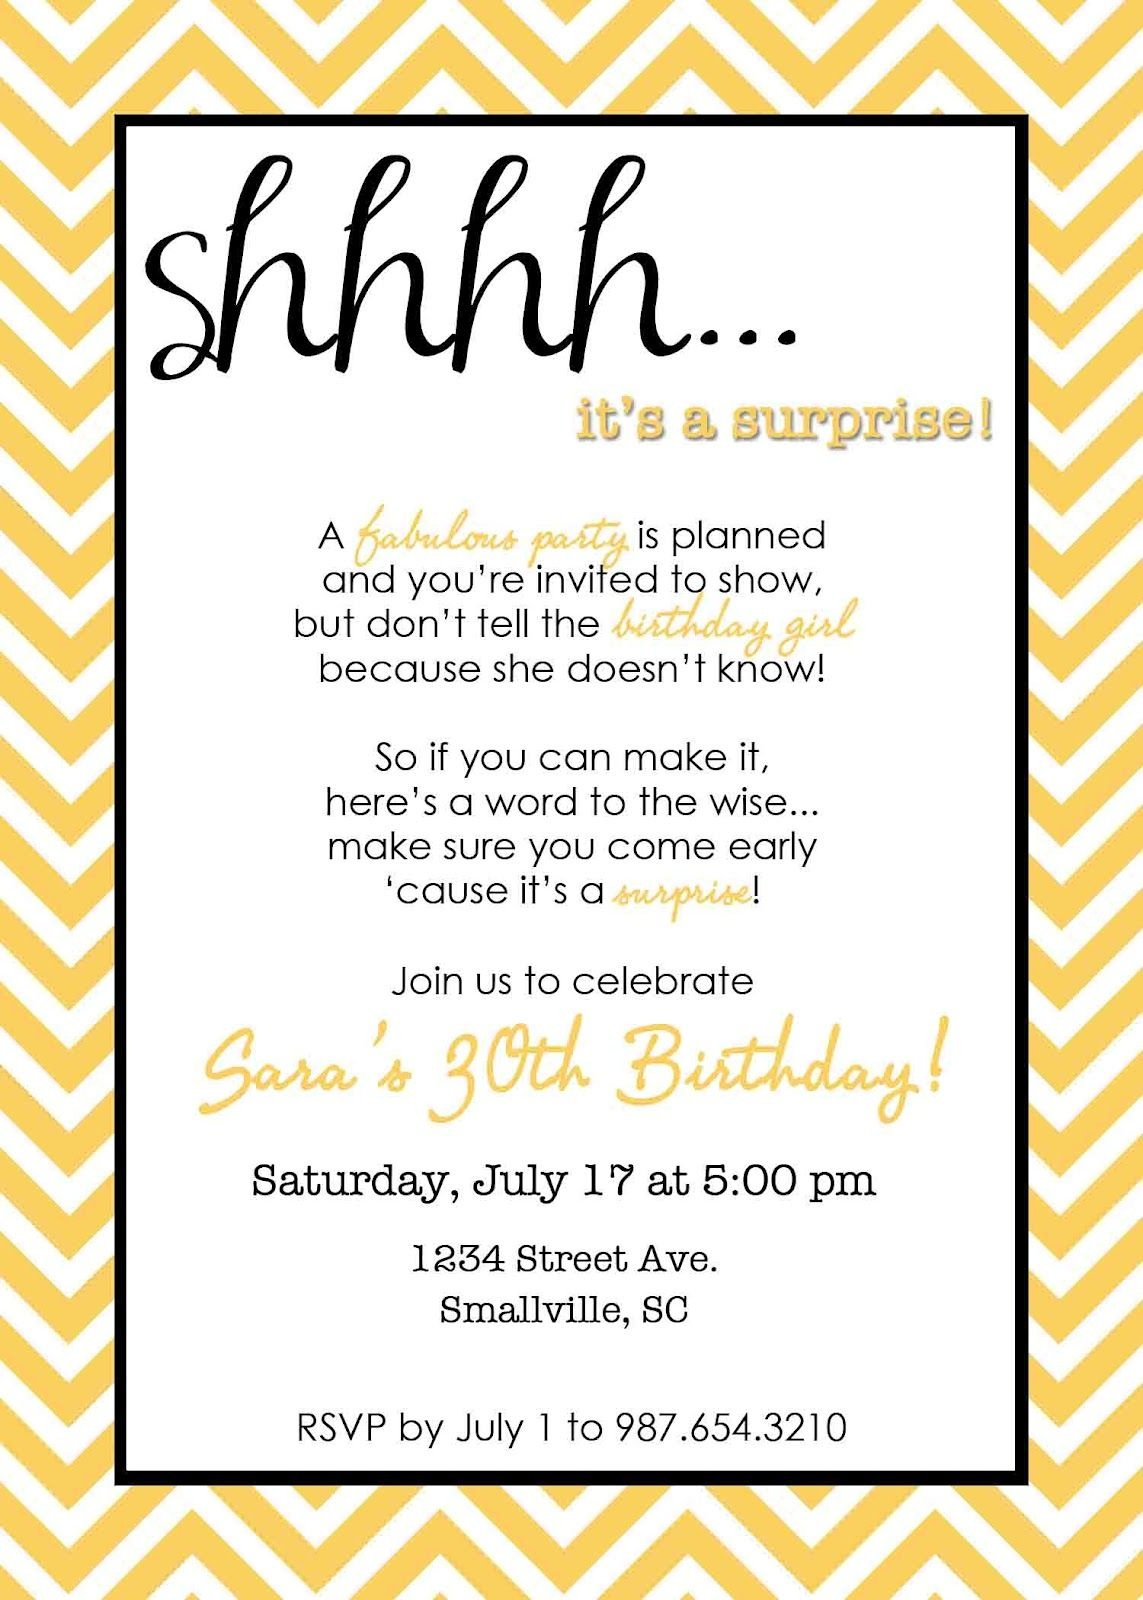 Surprise Birthday Invitation Template - Demir.iso-Consulting.co - Free Printable Surprise Party Invitation Templates